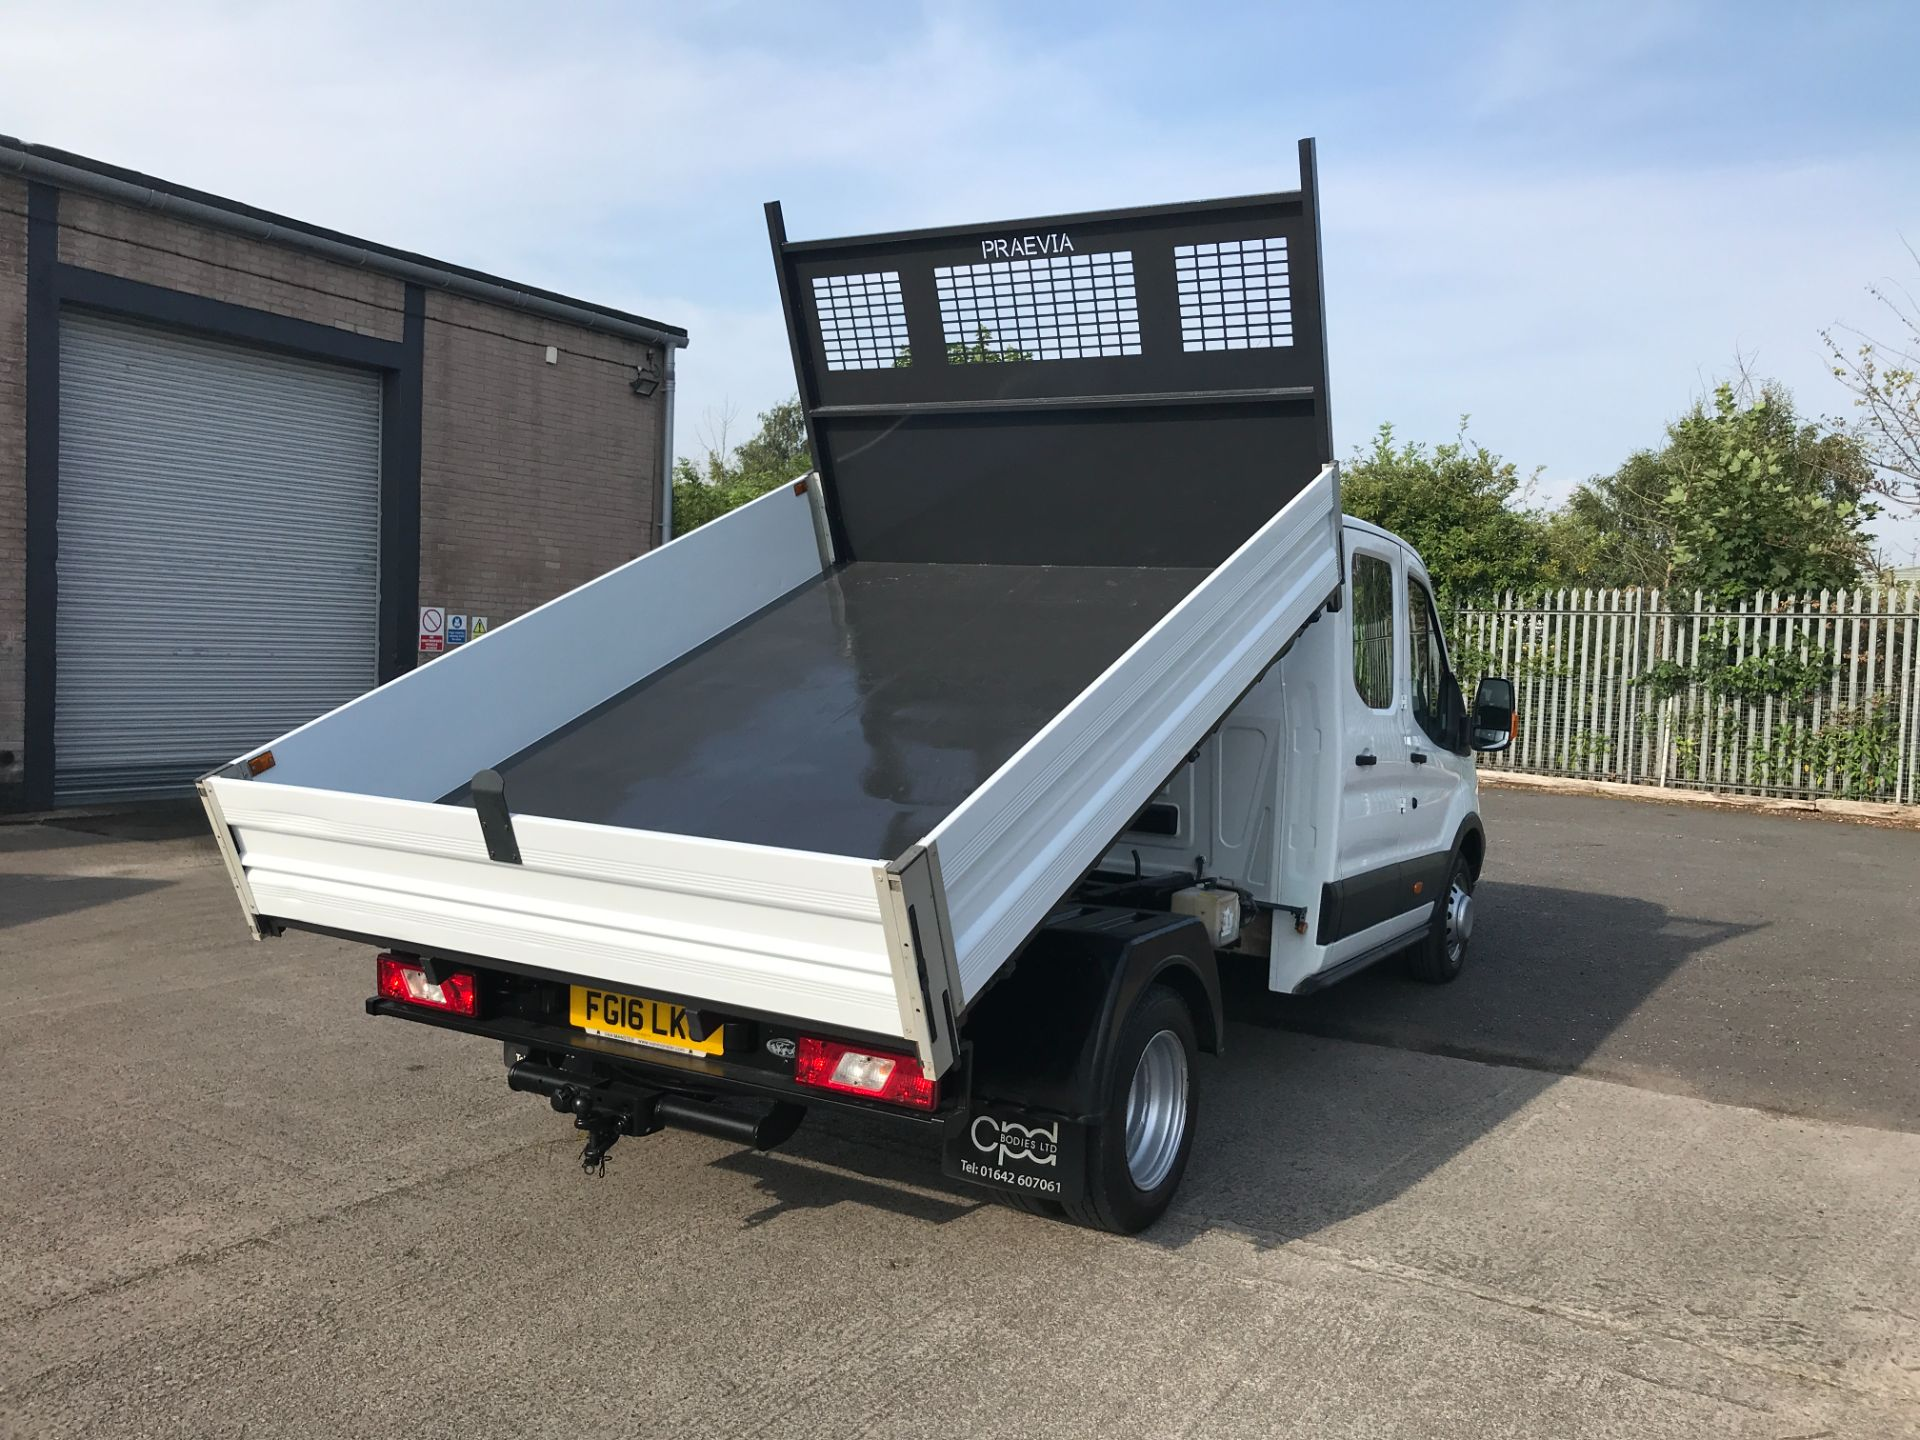 2016 Ford Transit T350 DOUBLE CAB TIPPER 125PS EURO 5 (FG16LKU) Image 3